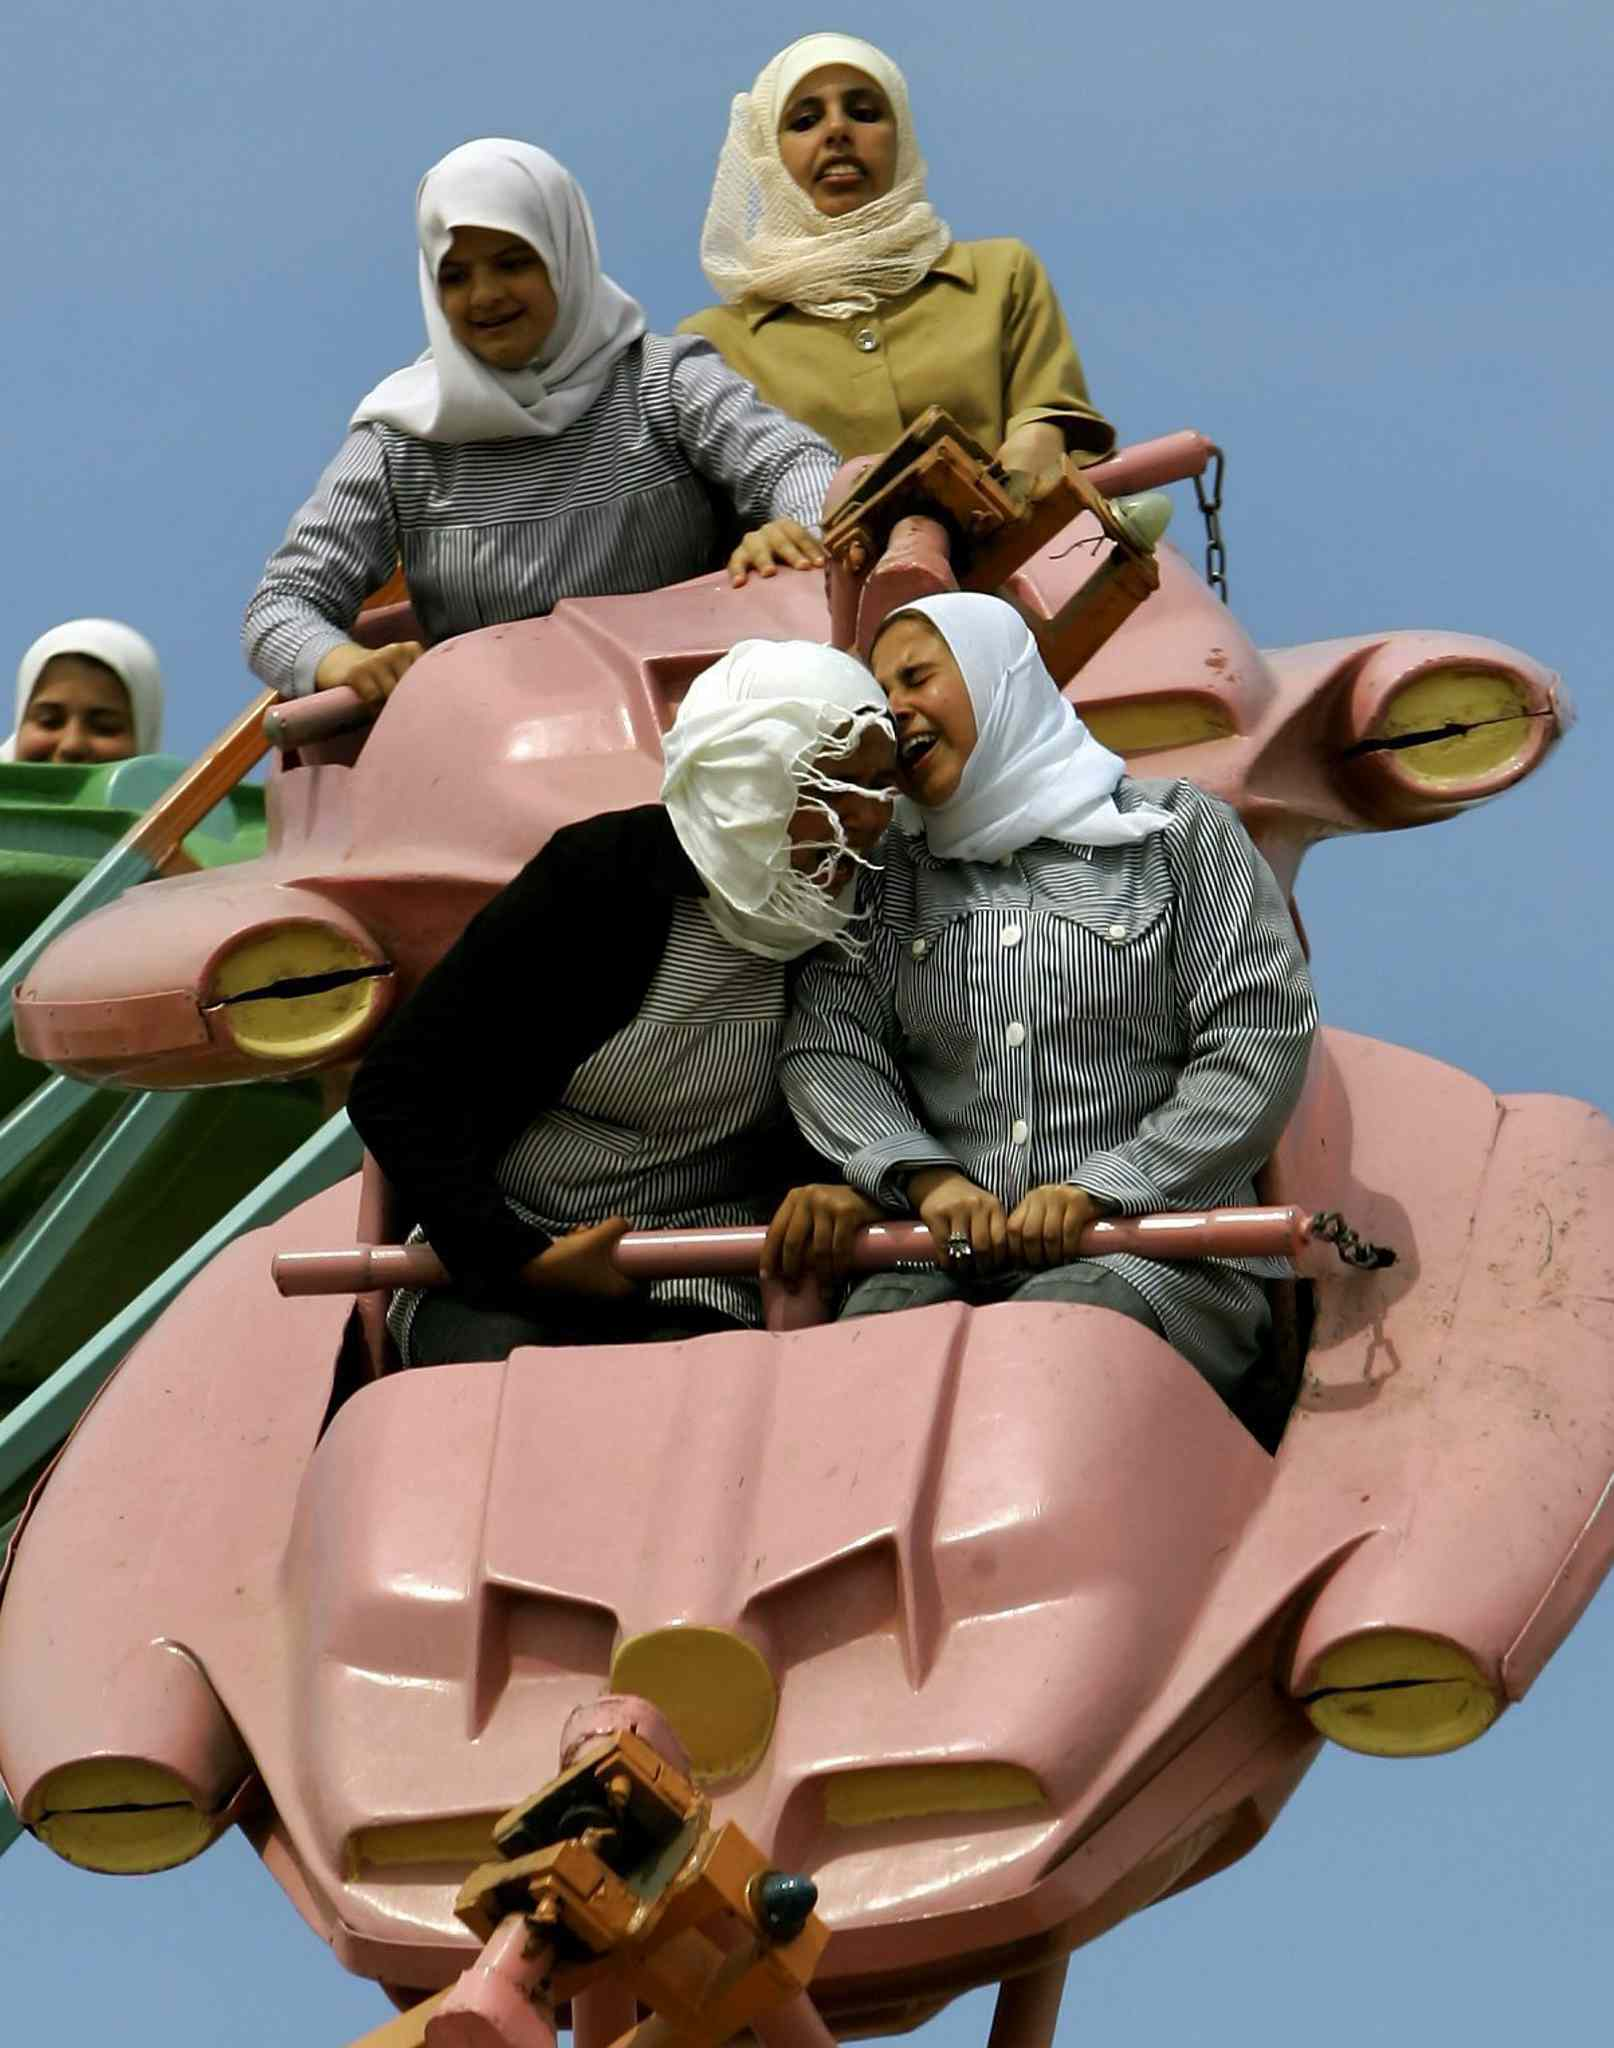 March 26, 2006:  Palestinians enjoy a ride at an amusement park outside Gaza City.